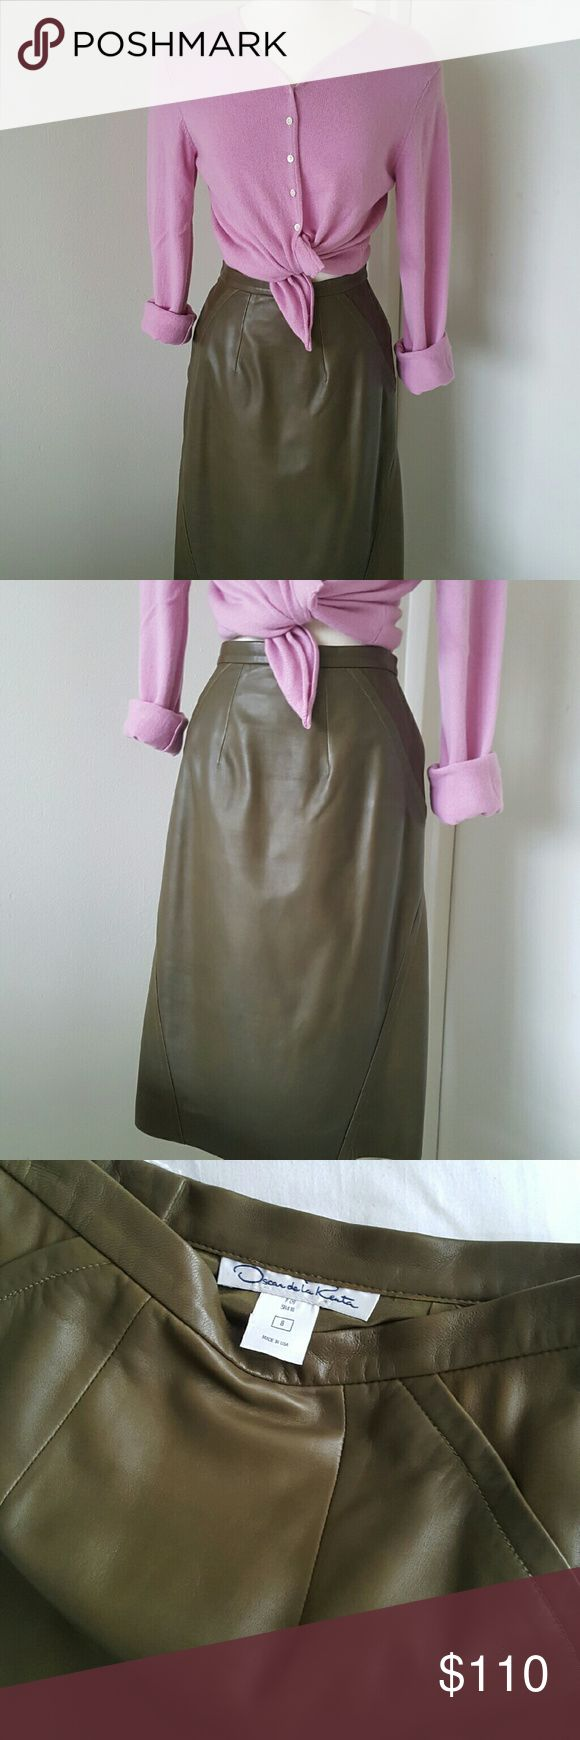 """Oscar de La Renta Green Olive Leather Skirt Authentic skirt from Oscar de La Renta, very soft genuine leather almost like the second skin. Green olive color, going well with many outfits,  boots and sweater,  since I purchased from another posher l didn't were.  Like new,  excellent condition,  fully lined, zippered on the side of the back.  Measurements are length 24"""" waist 30"""" hips 40"""" Oscar de la Renta Skirts"""